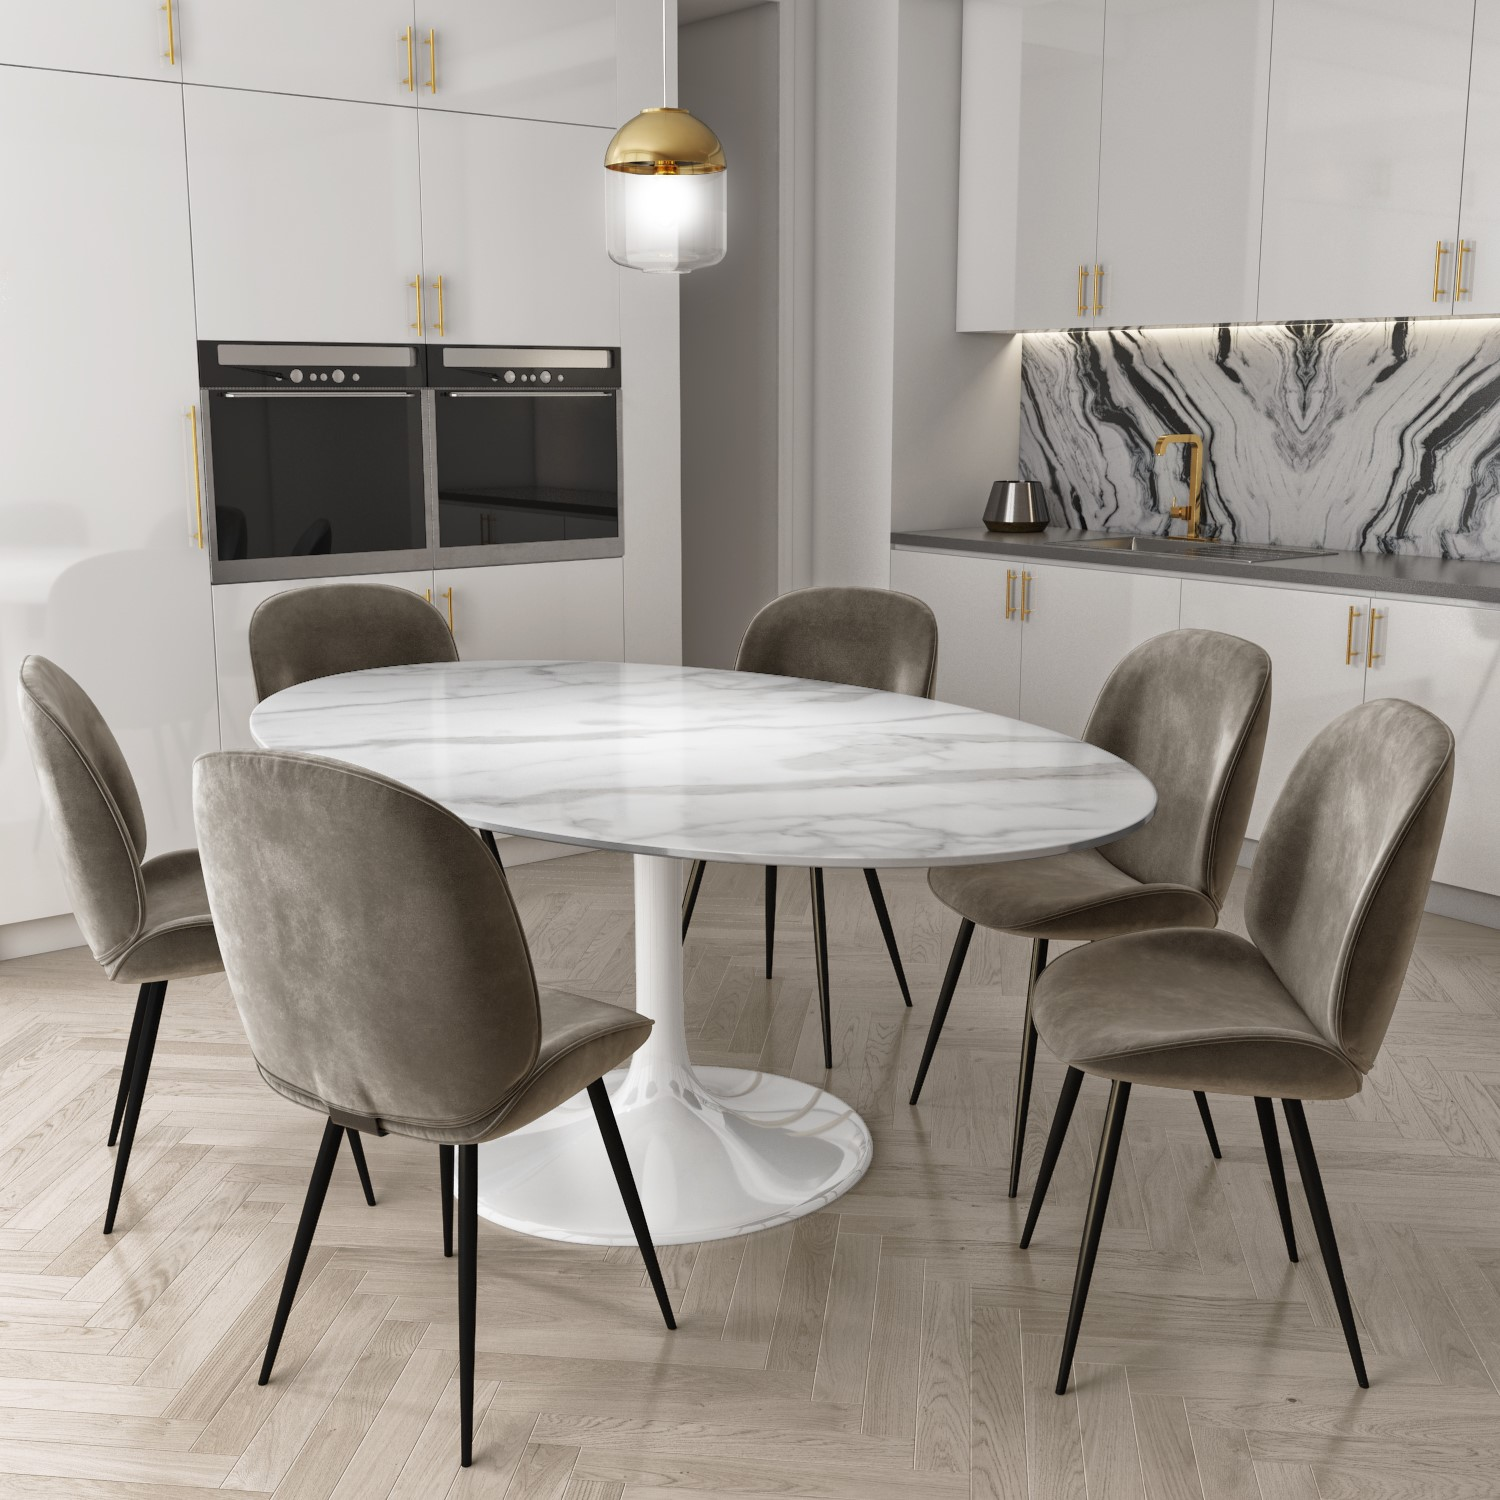 White Oval Dining Table For 6 Off 61, White Oval Dining Room Table